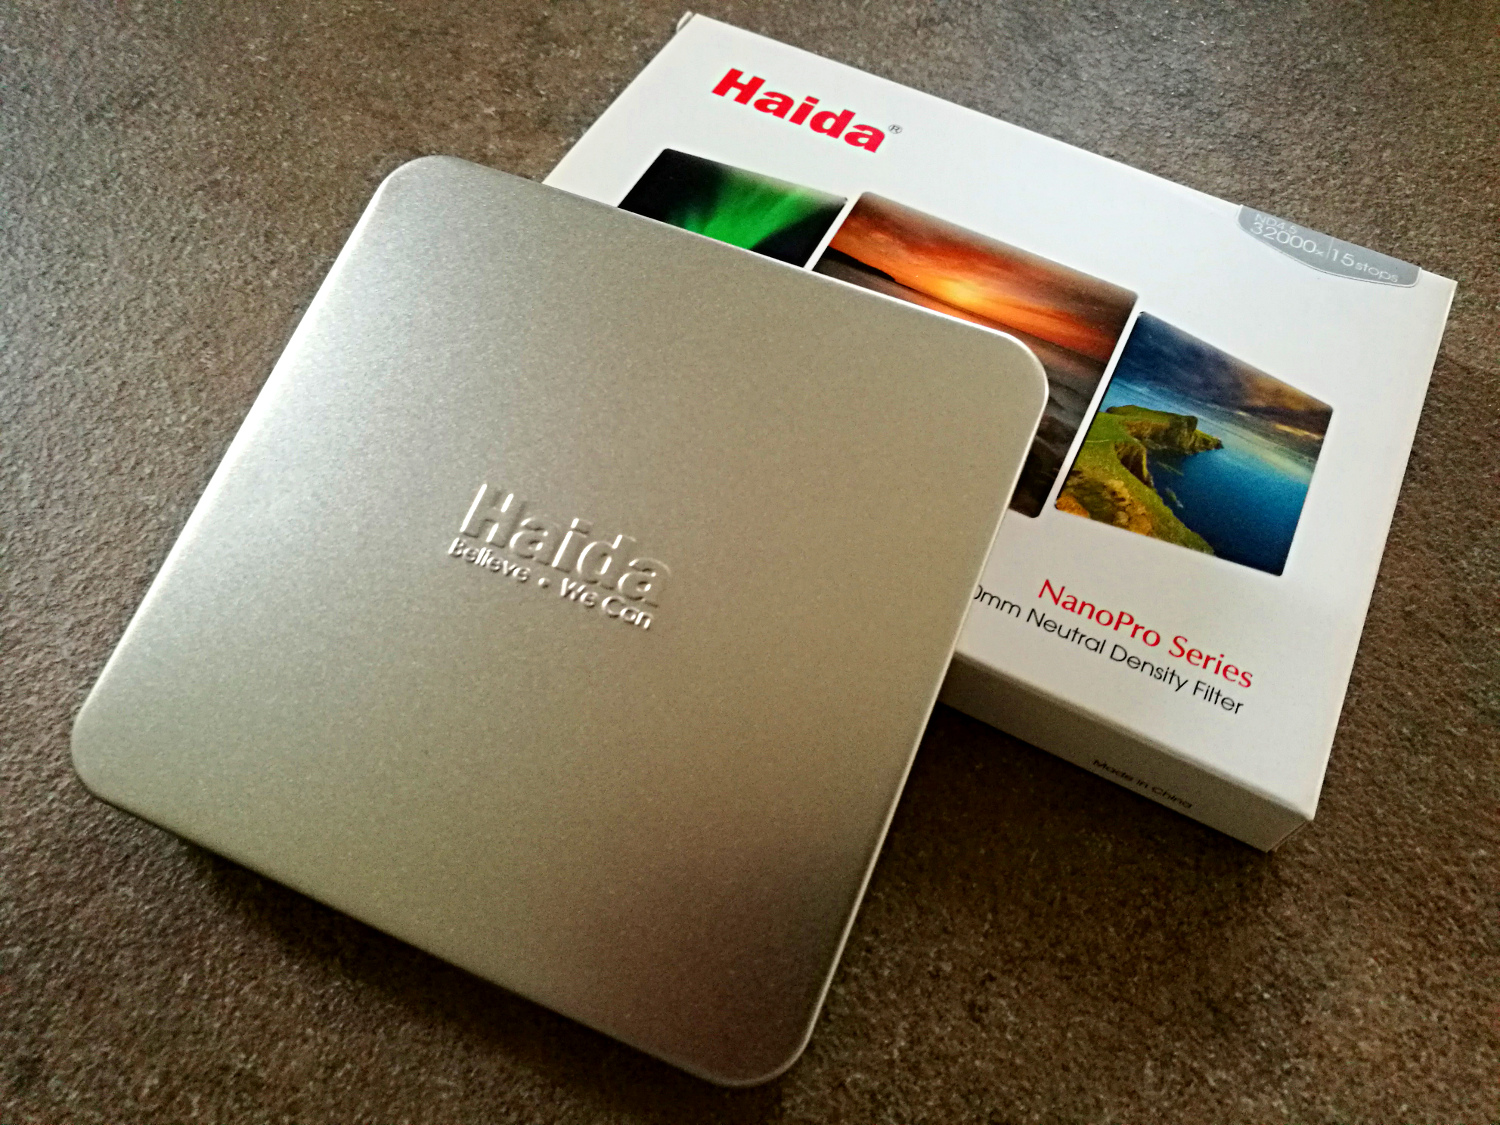 Haida ND4.5 external box and metal case